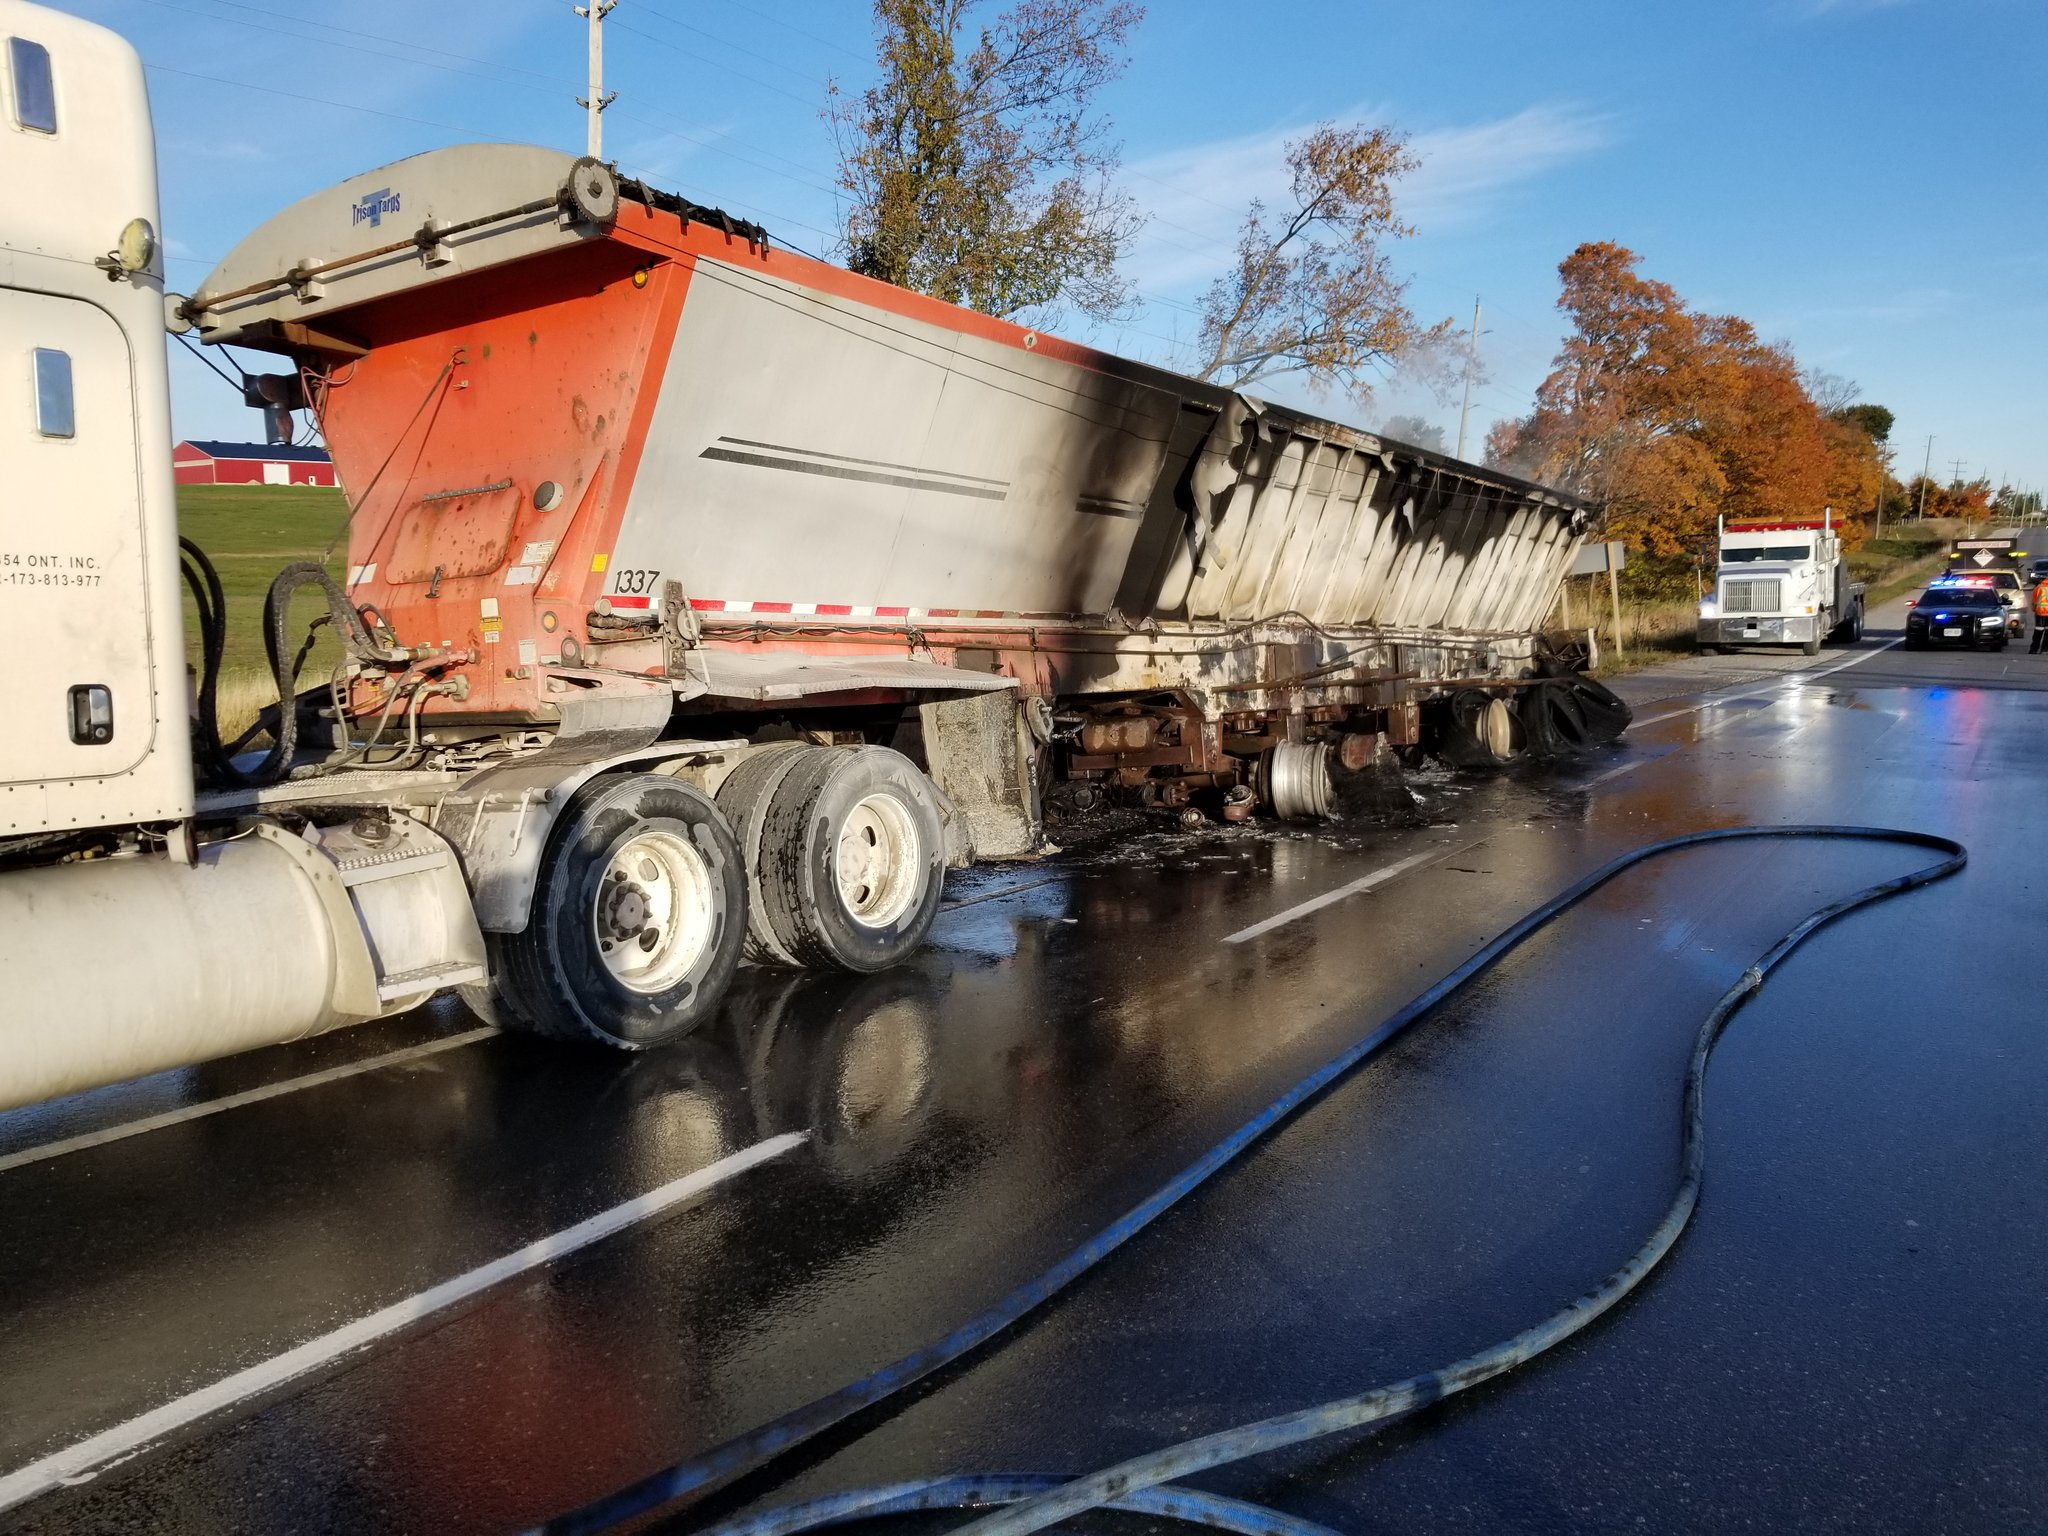 Transport truck catches fire on Highway 12 in Greenbank